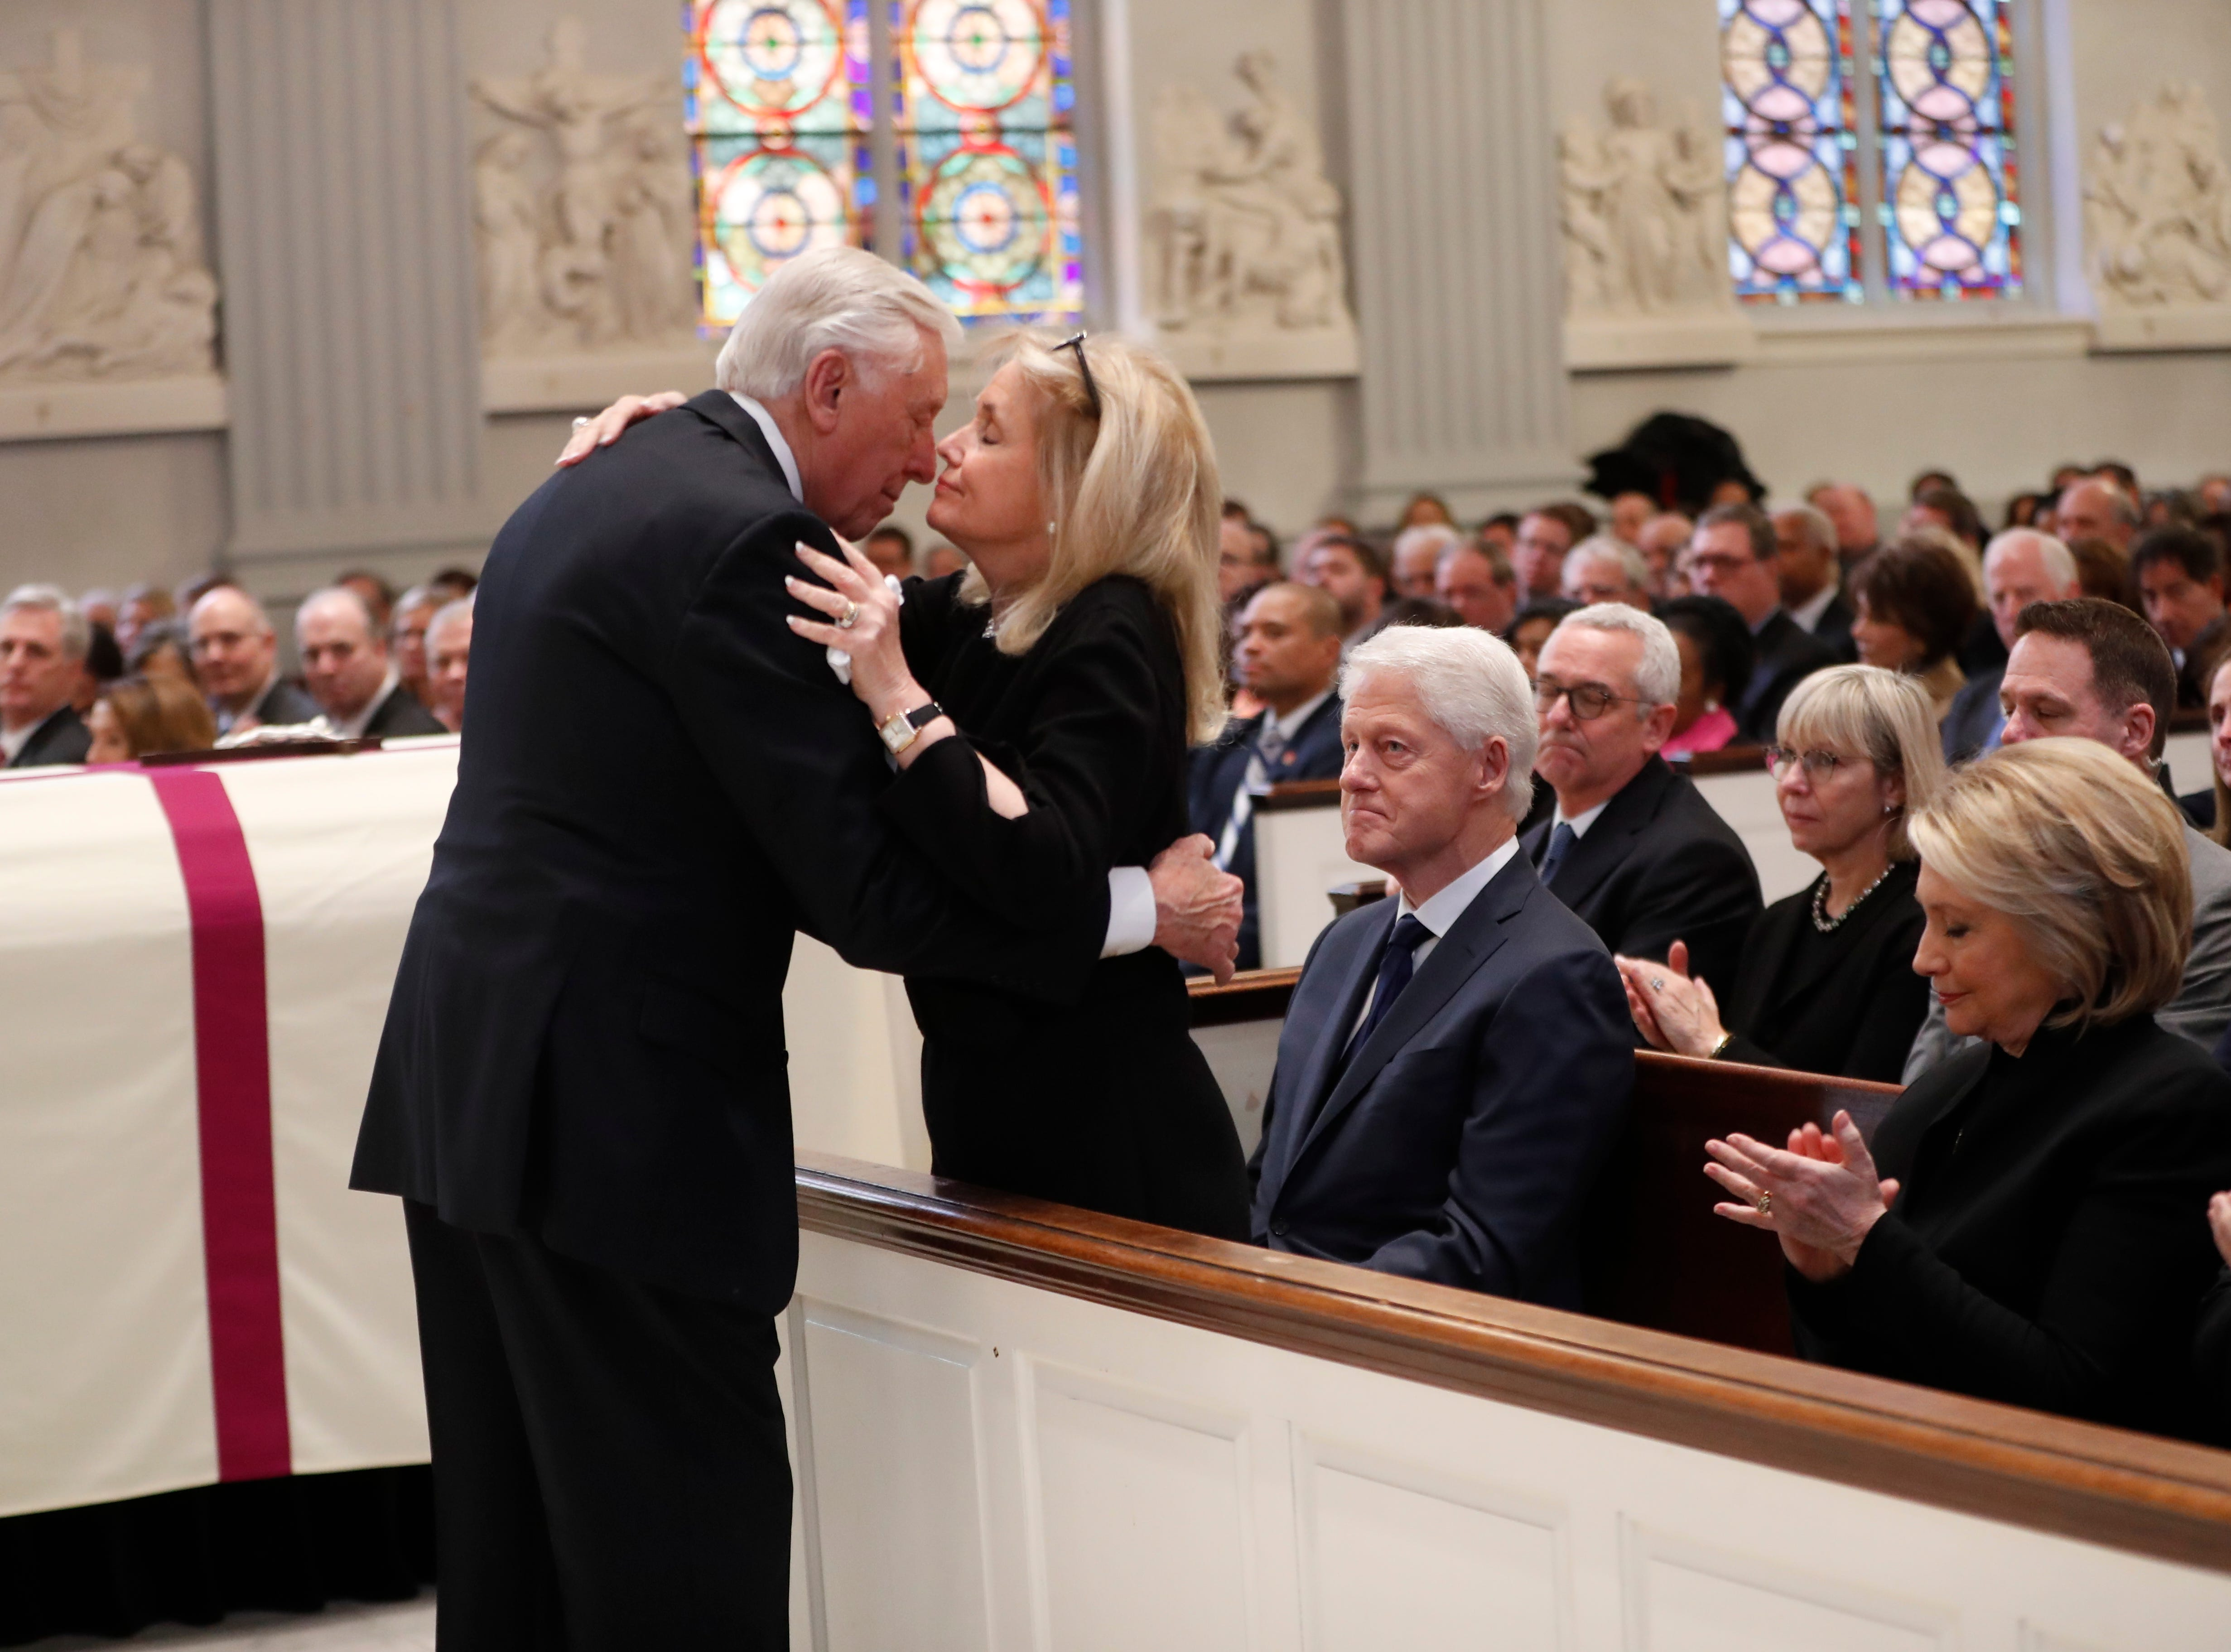 Rep. Steny Hoyer, D-Md., hugs Rep. Debbie Dingell, D-Dearborn, during the funeral for her husband, former Rep. John Dingell.